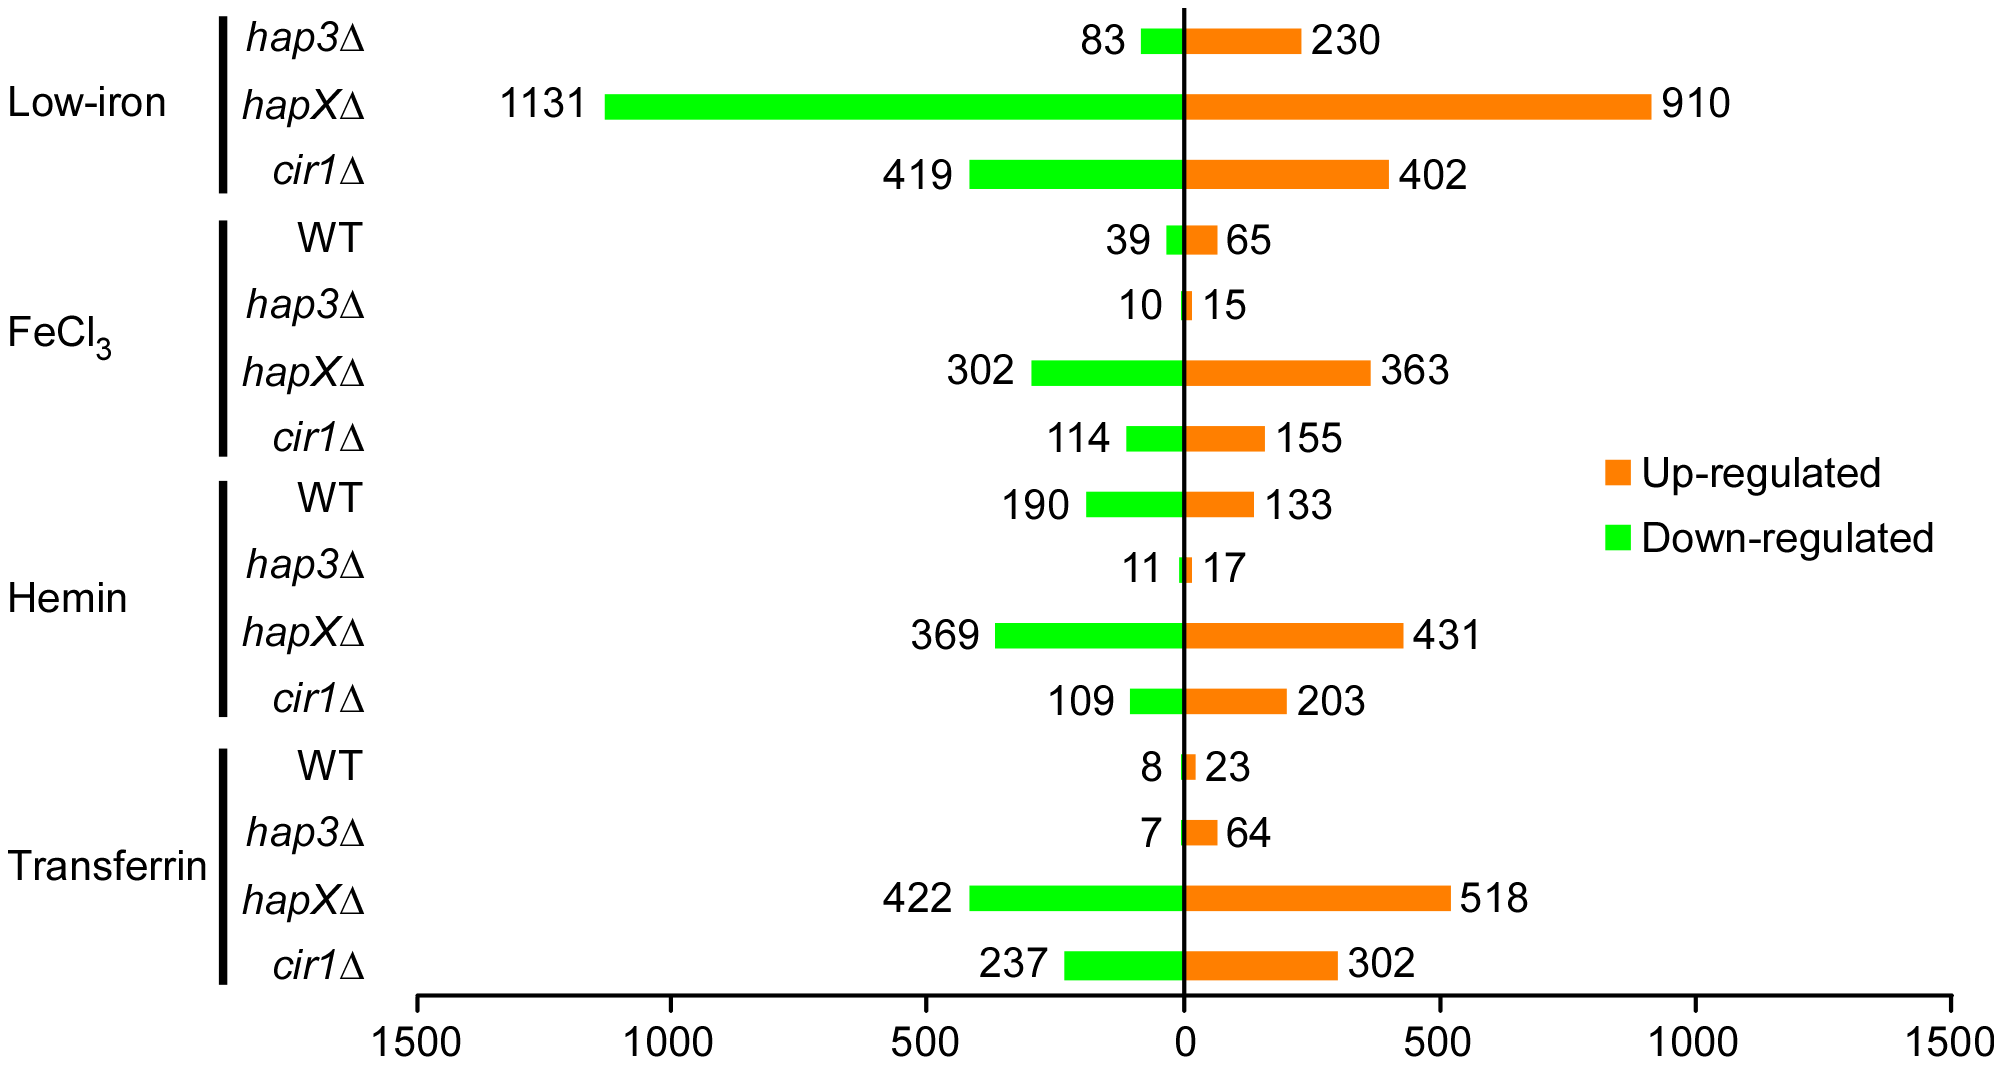 Overview of differentially-regulated genes in response to different iron sources.